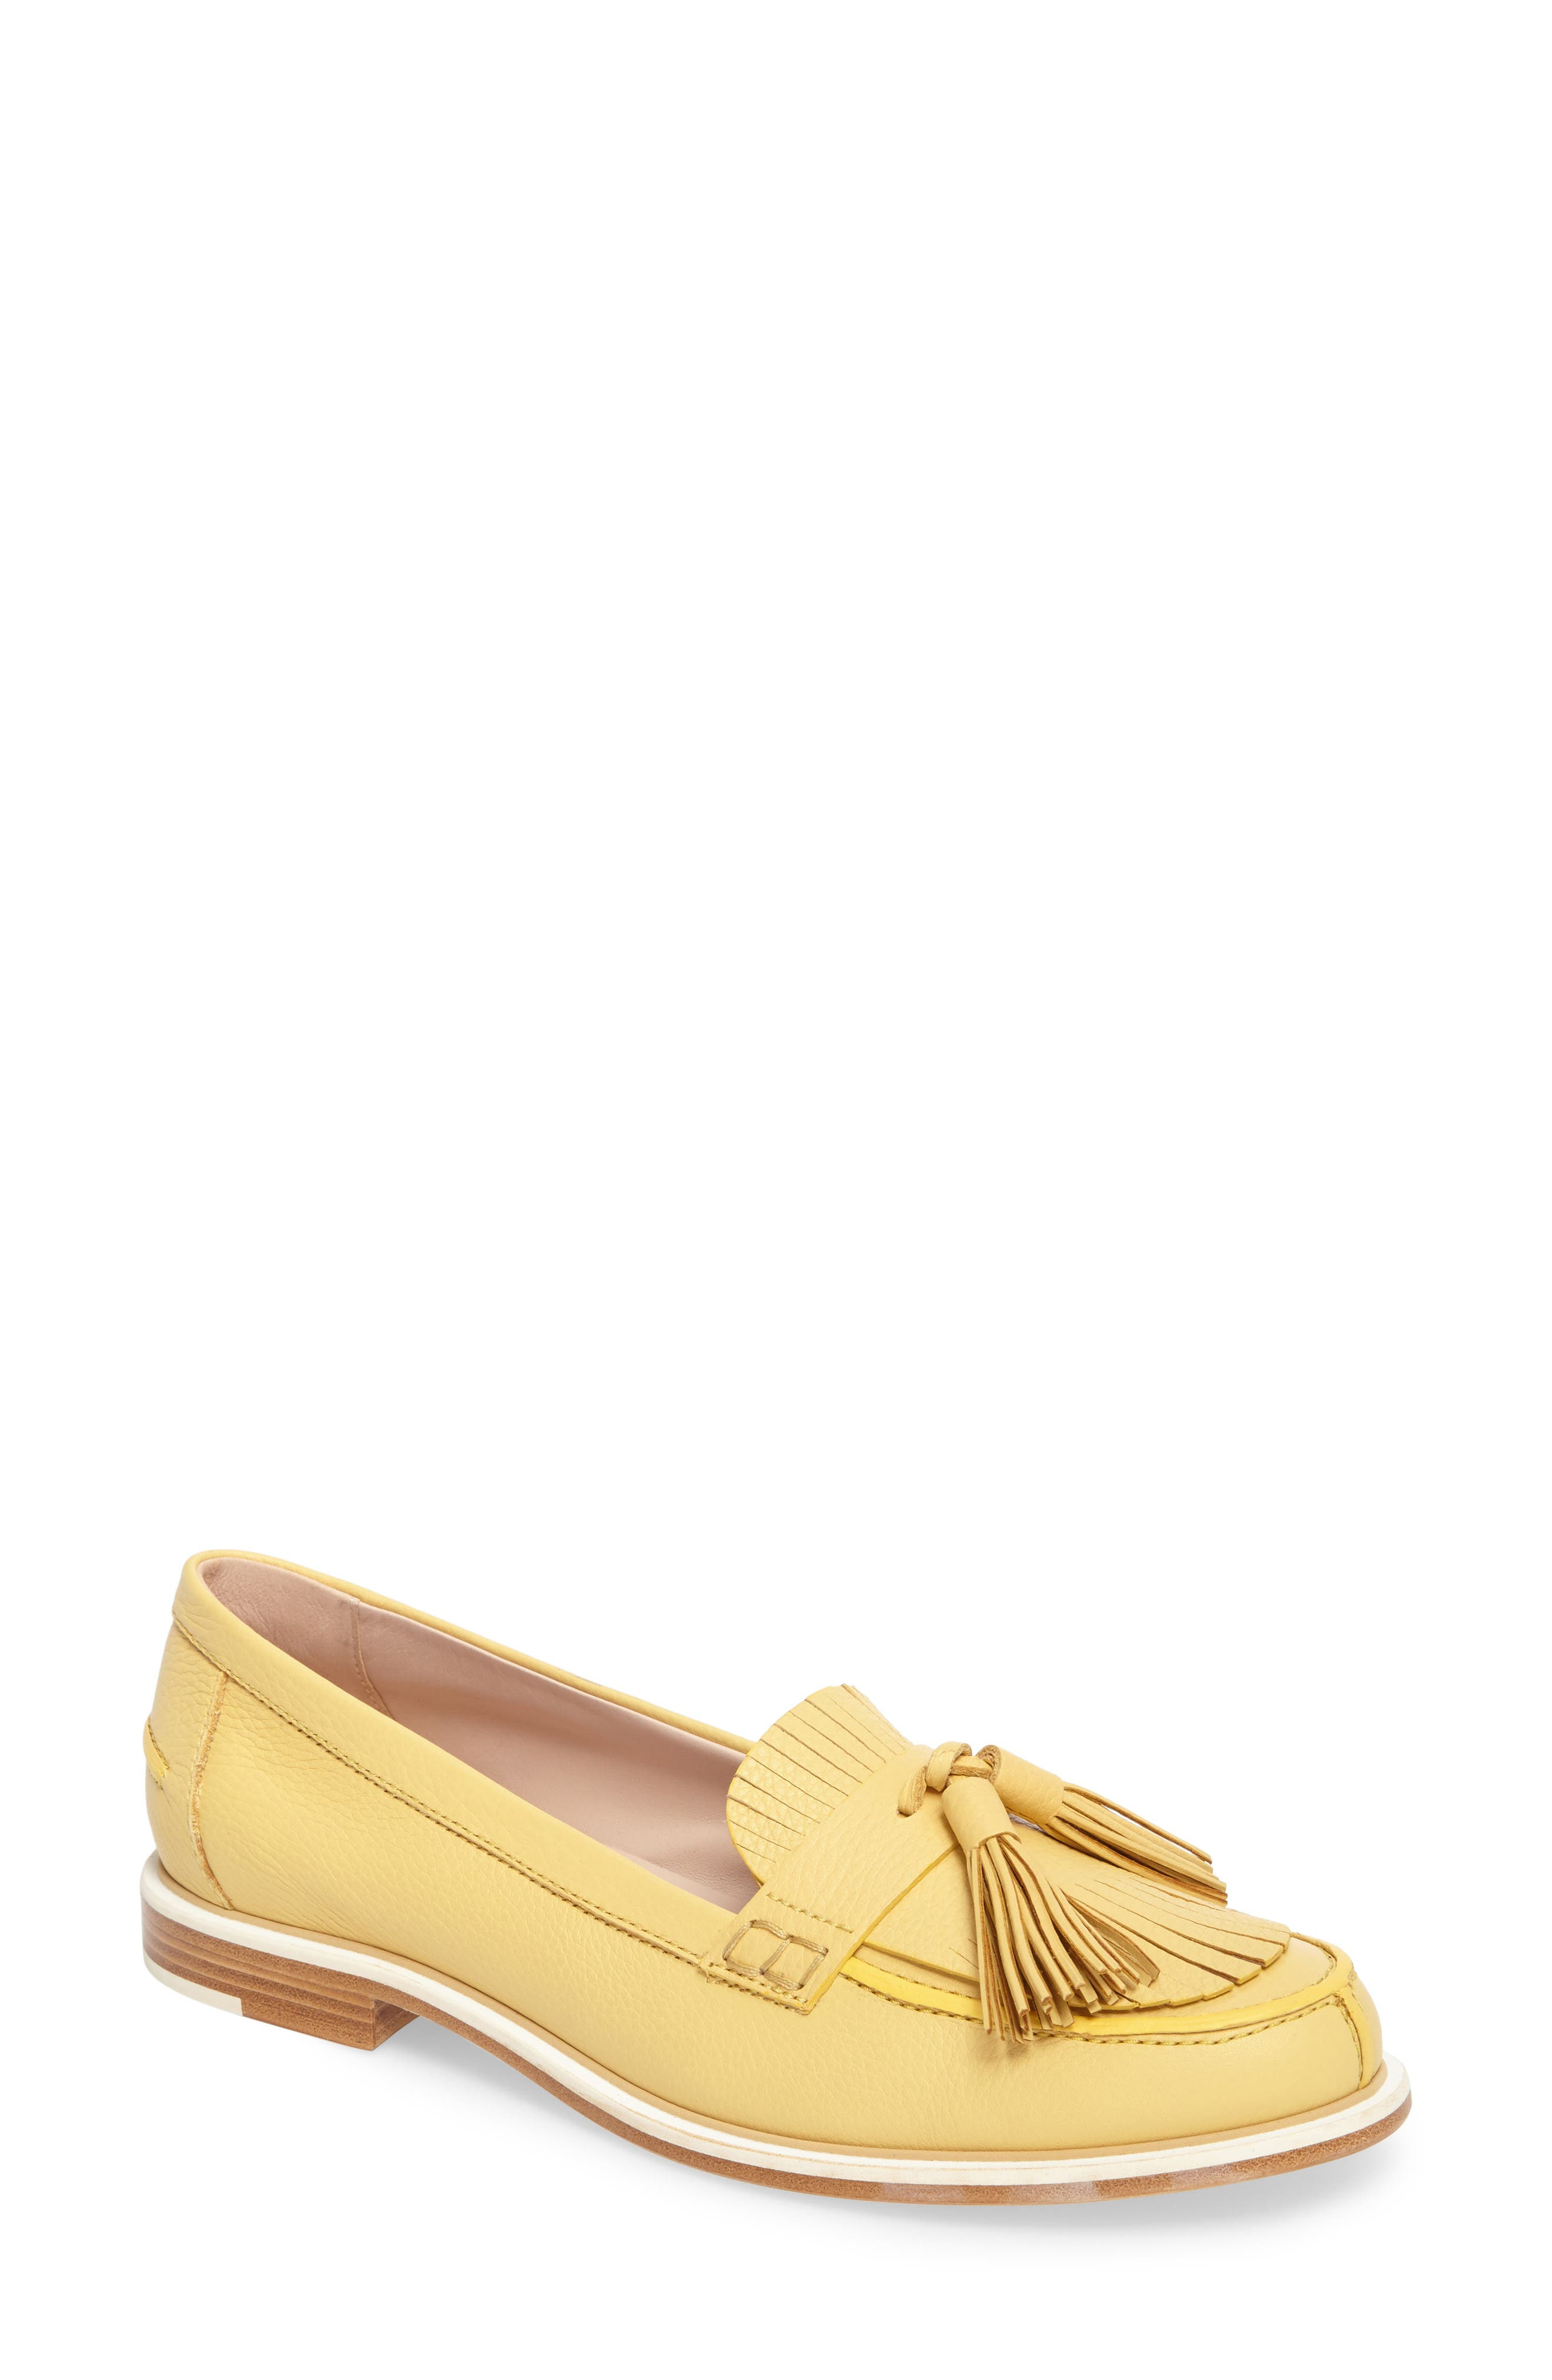 Fringe Tassel Loafer,                             Main thumbnail 1, color,                             Pale Yellow